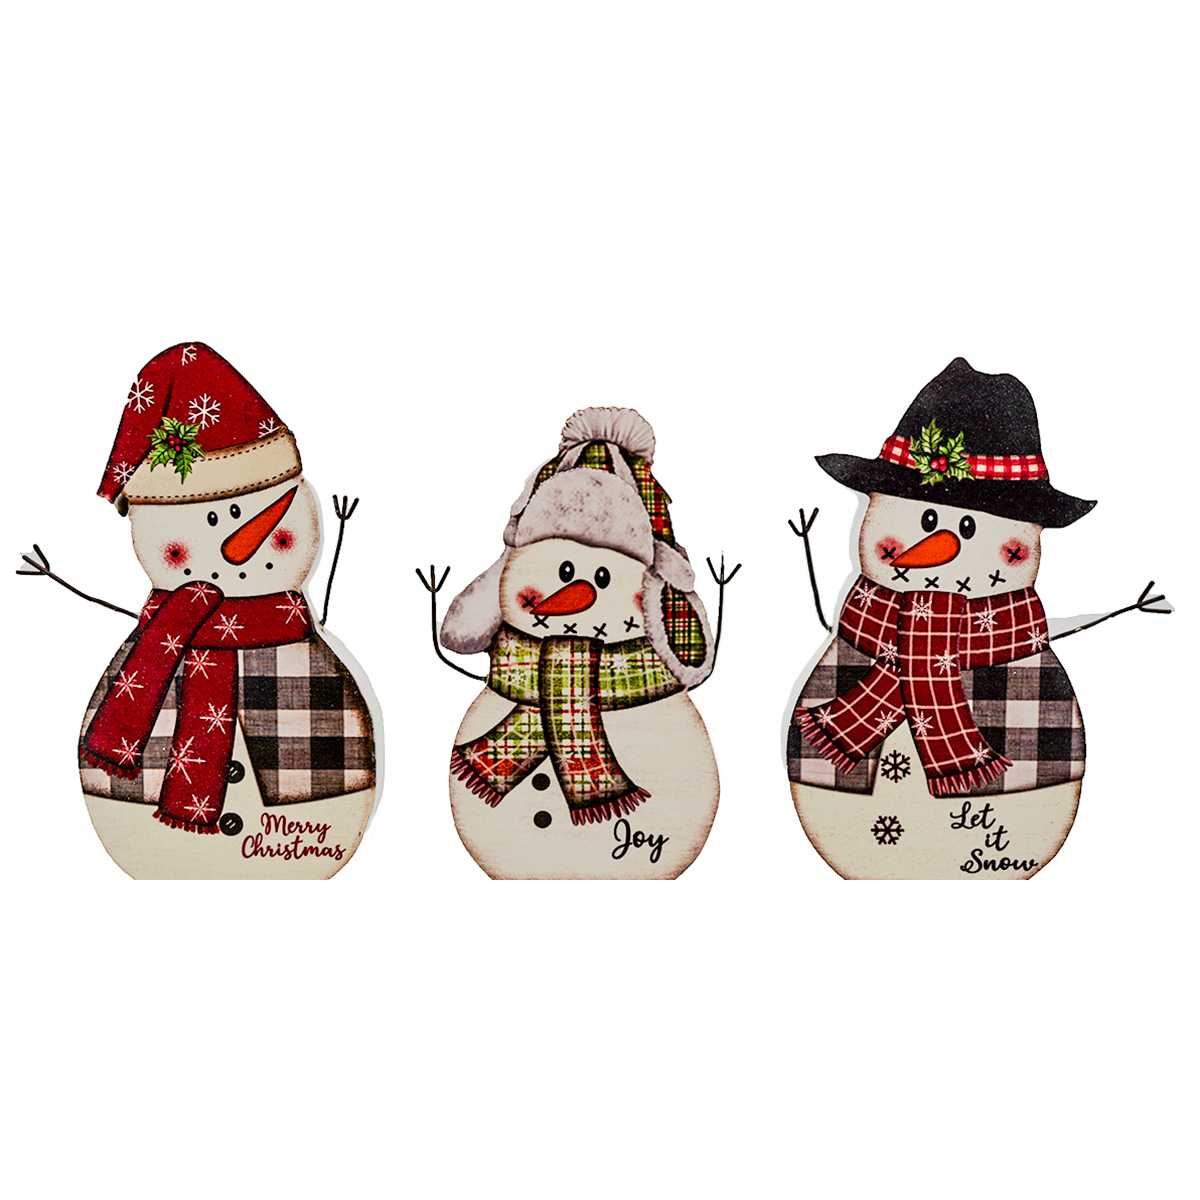 "6.5"" WOOD STANDING SNOWMAN SET OF 3"